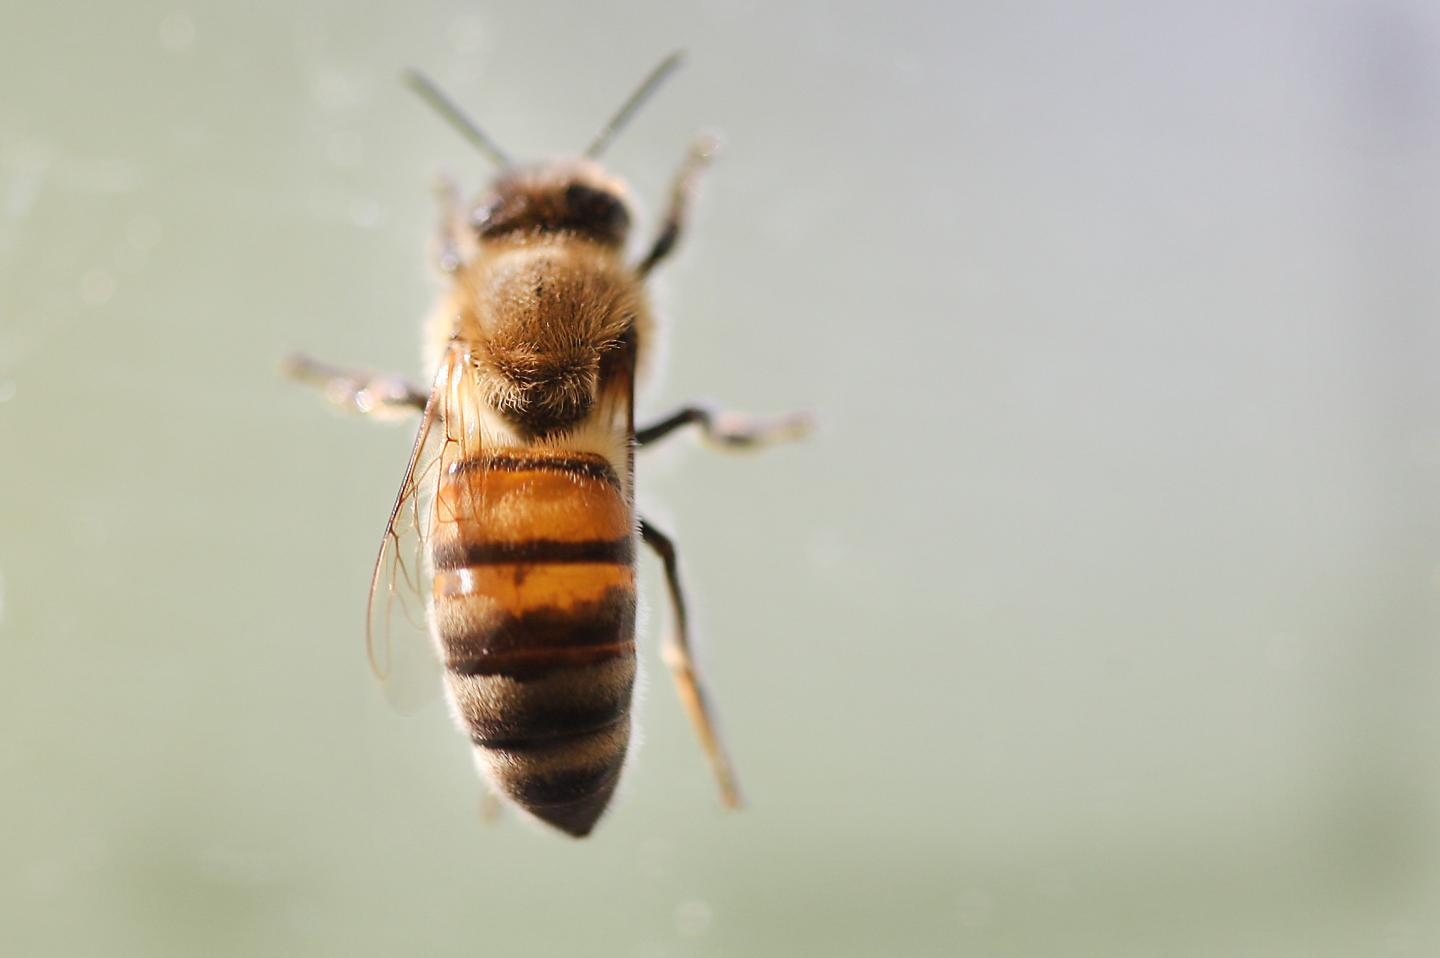 Bees rely on goldenrod pollen as a food source, but it's less nutritious than it used to be due to rising CO2 levels, a Purdue University study finds. CREDIT (Purdue University/Tom Campbell)